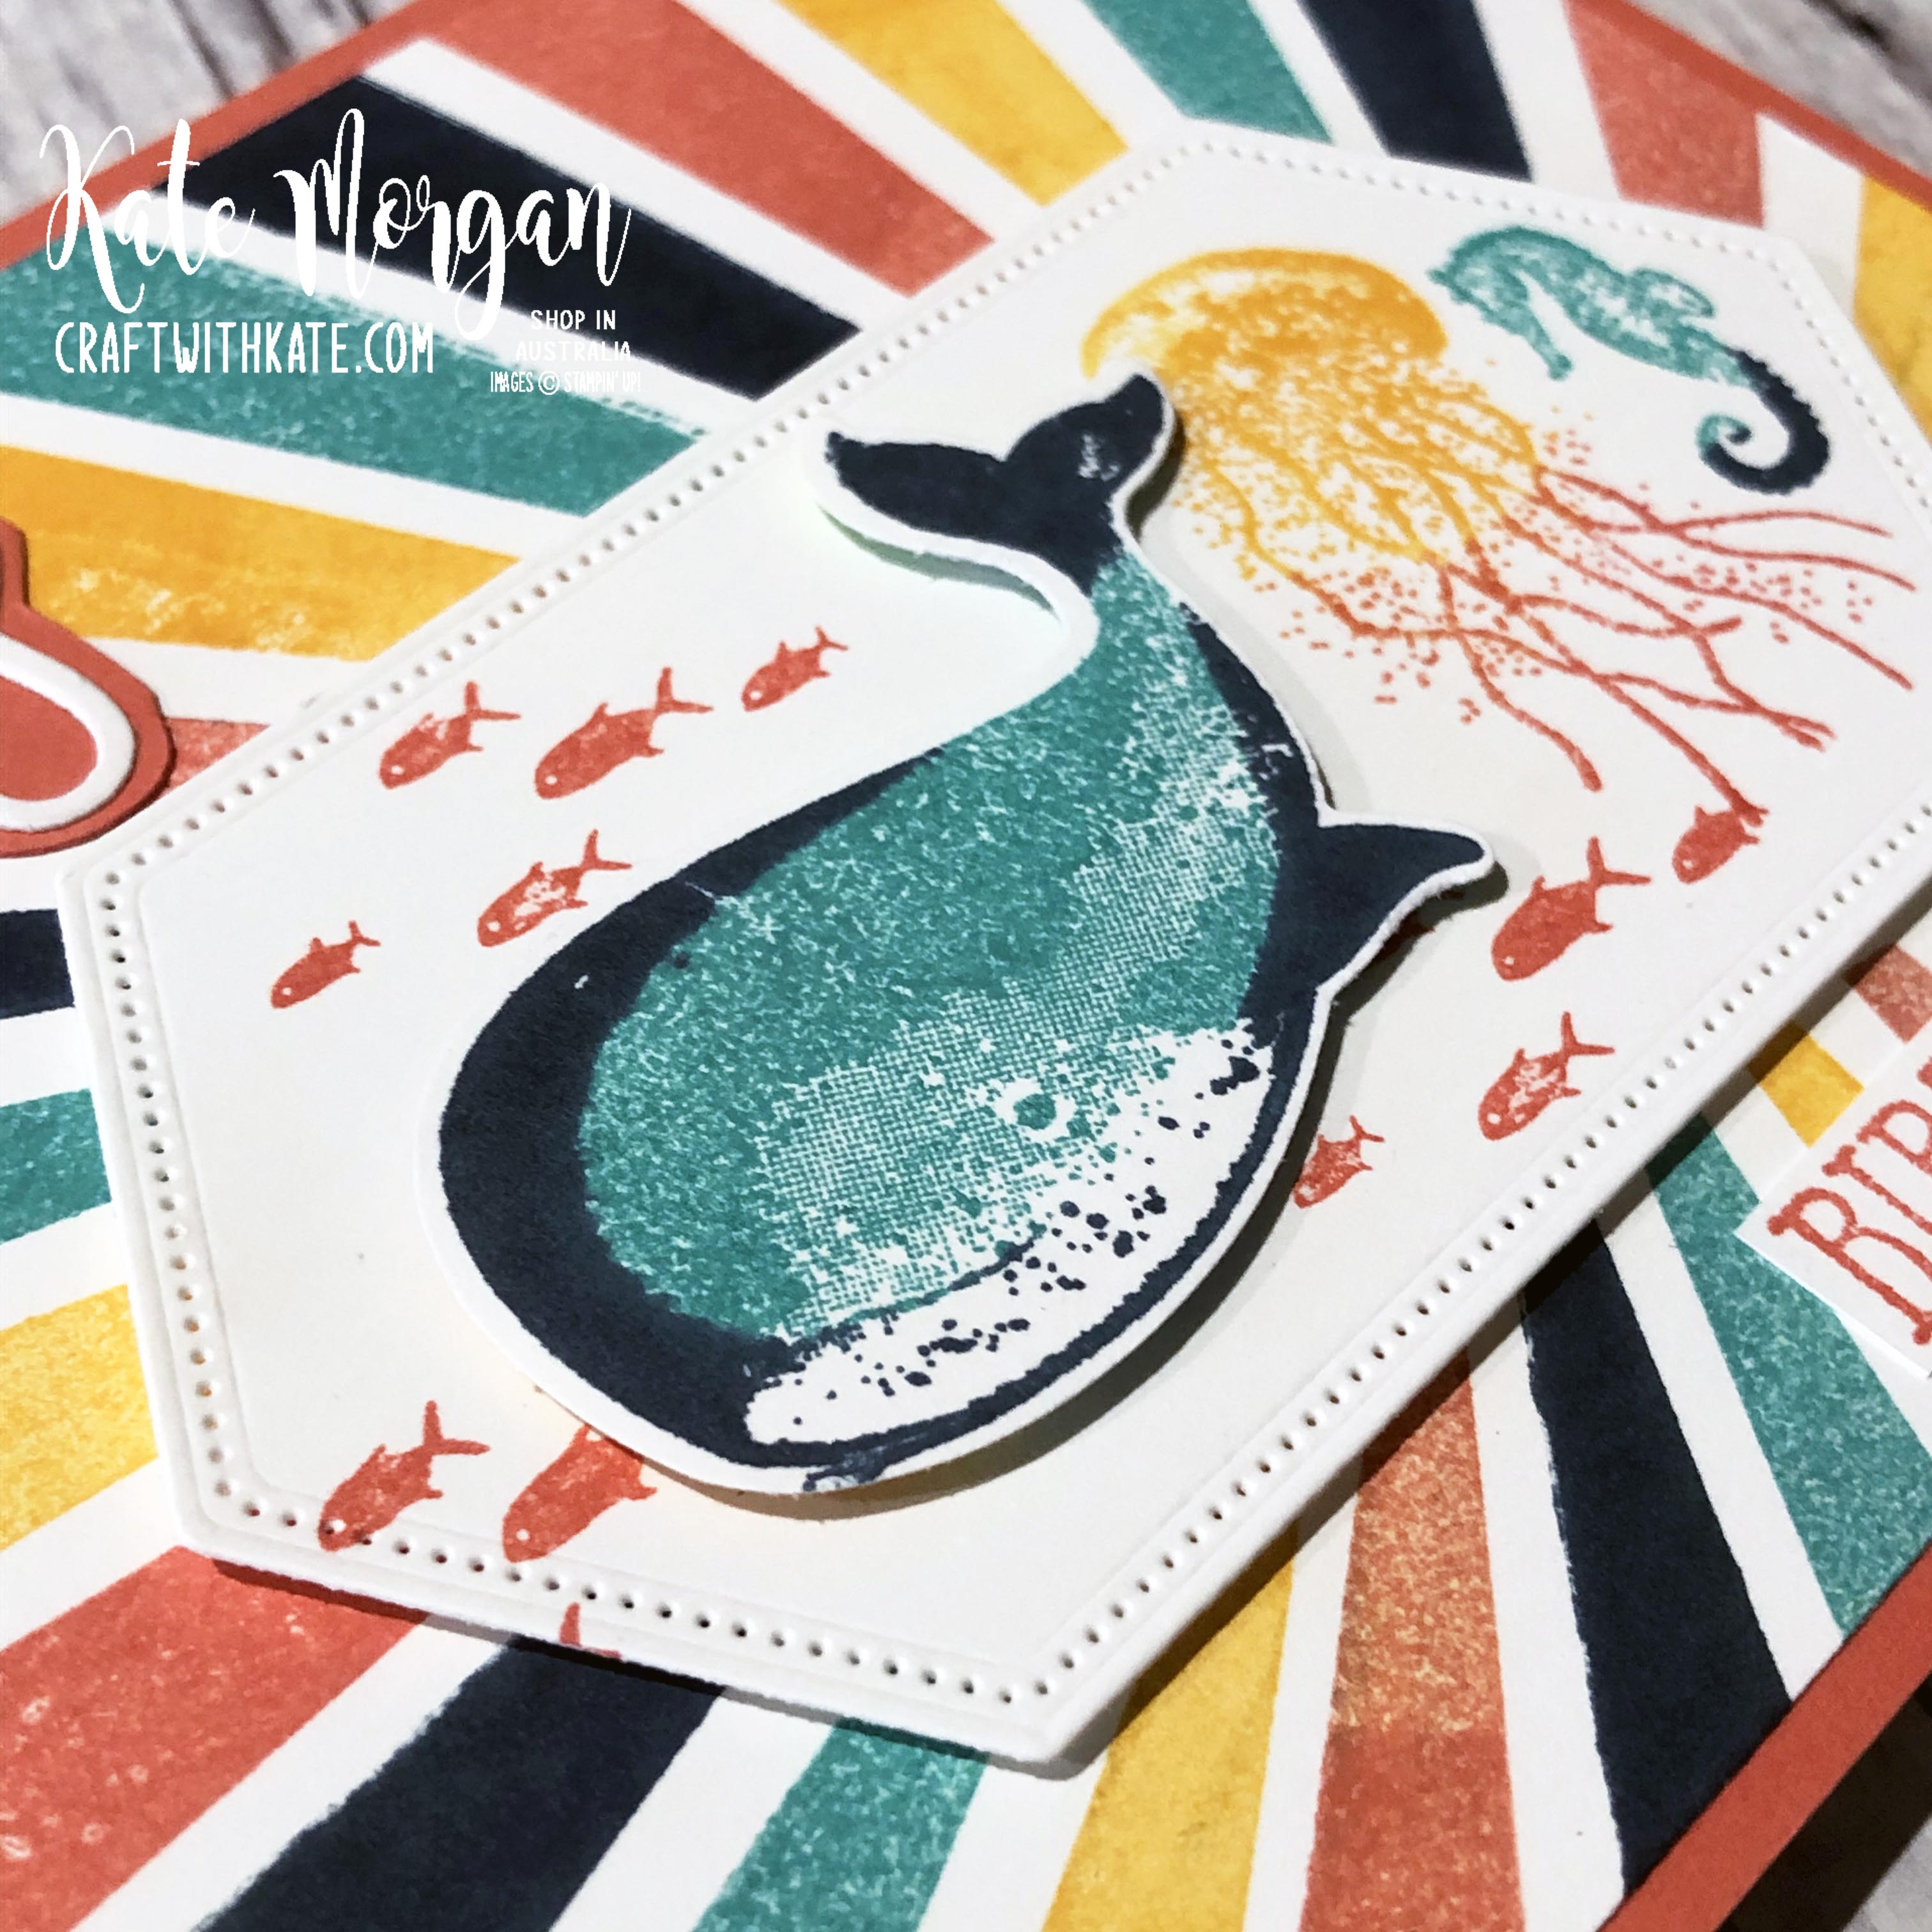 Calypso Coral CCS Card using Whale of a Time & High Tide stamps by Kate Morgan Stampin Up Australia 2020.